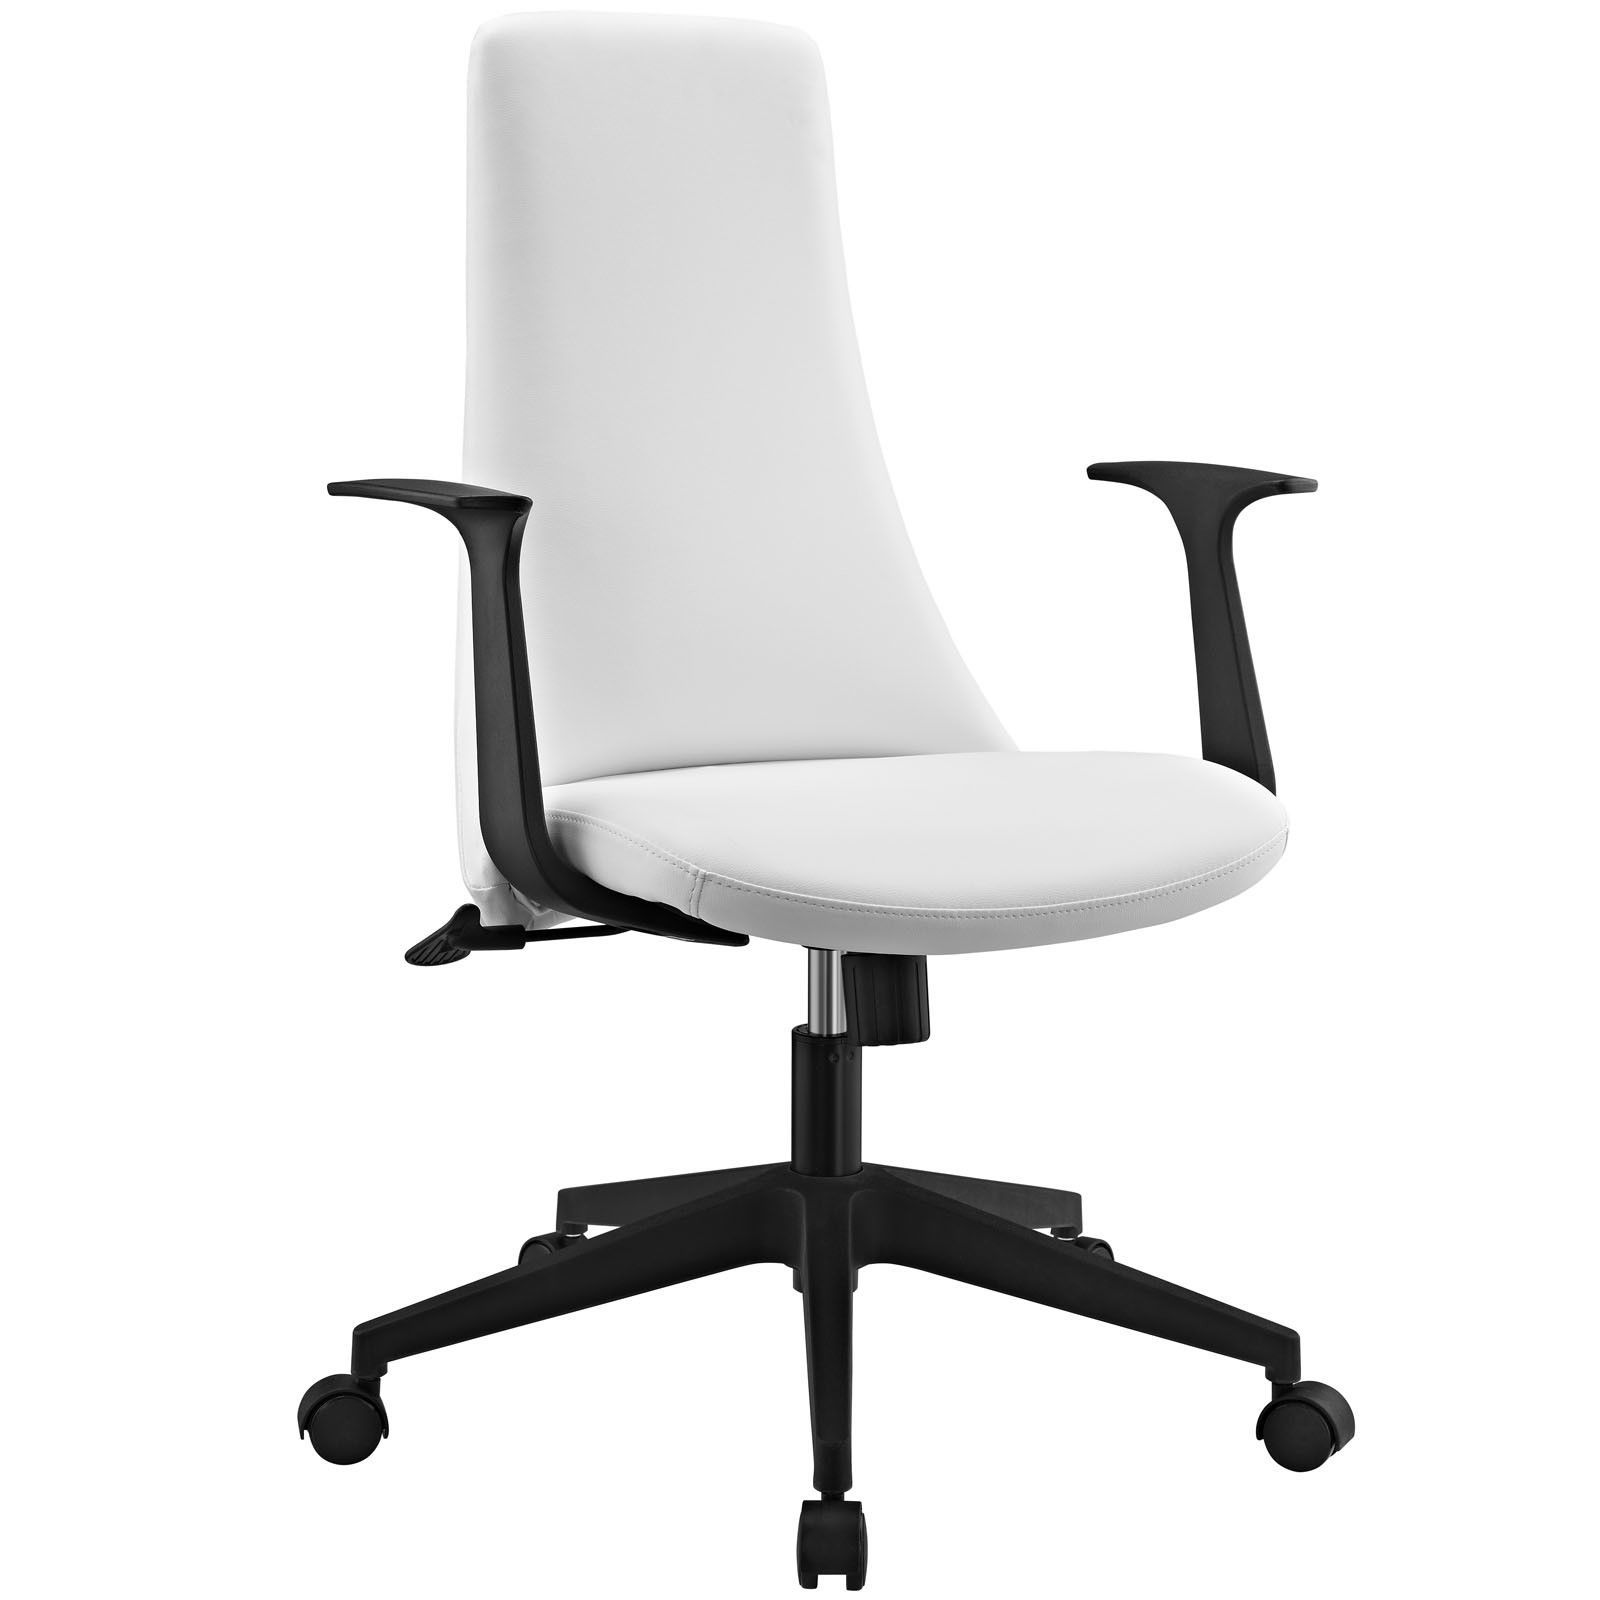 Tremendous Fount Mesh Task Chair Products Chair Upholstery Chair Pabps2019 Chair Design Images Pabps2019Com